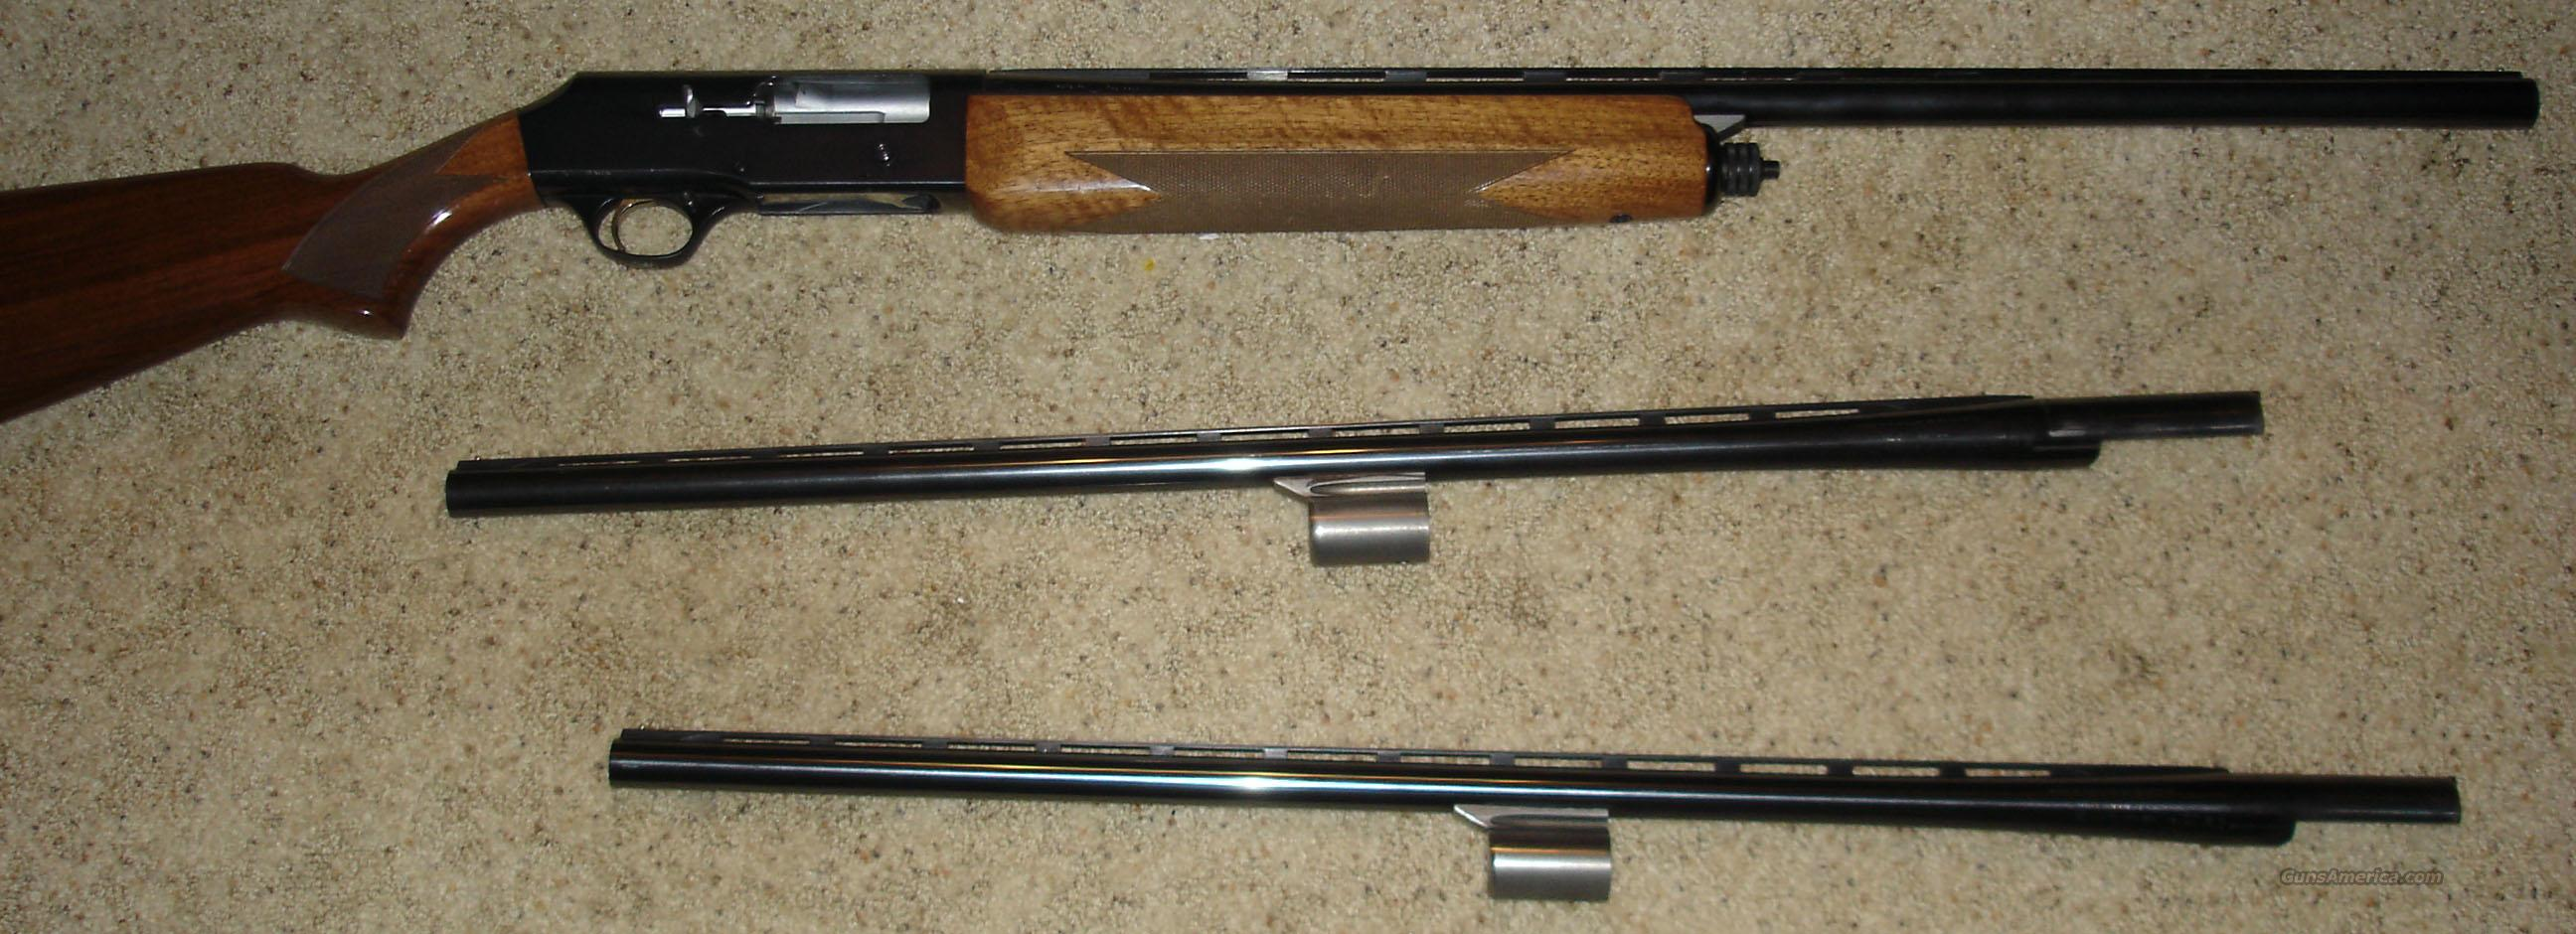 Browning B-80 12 Gauge Shotgun  Guns > Shotguns > Browning Shotguns > Autoloaders > Hunting